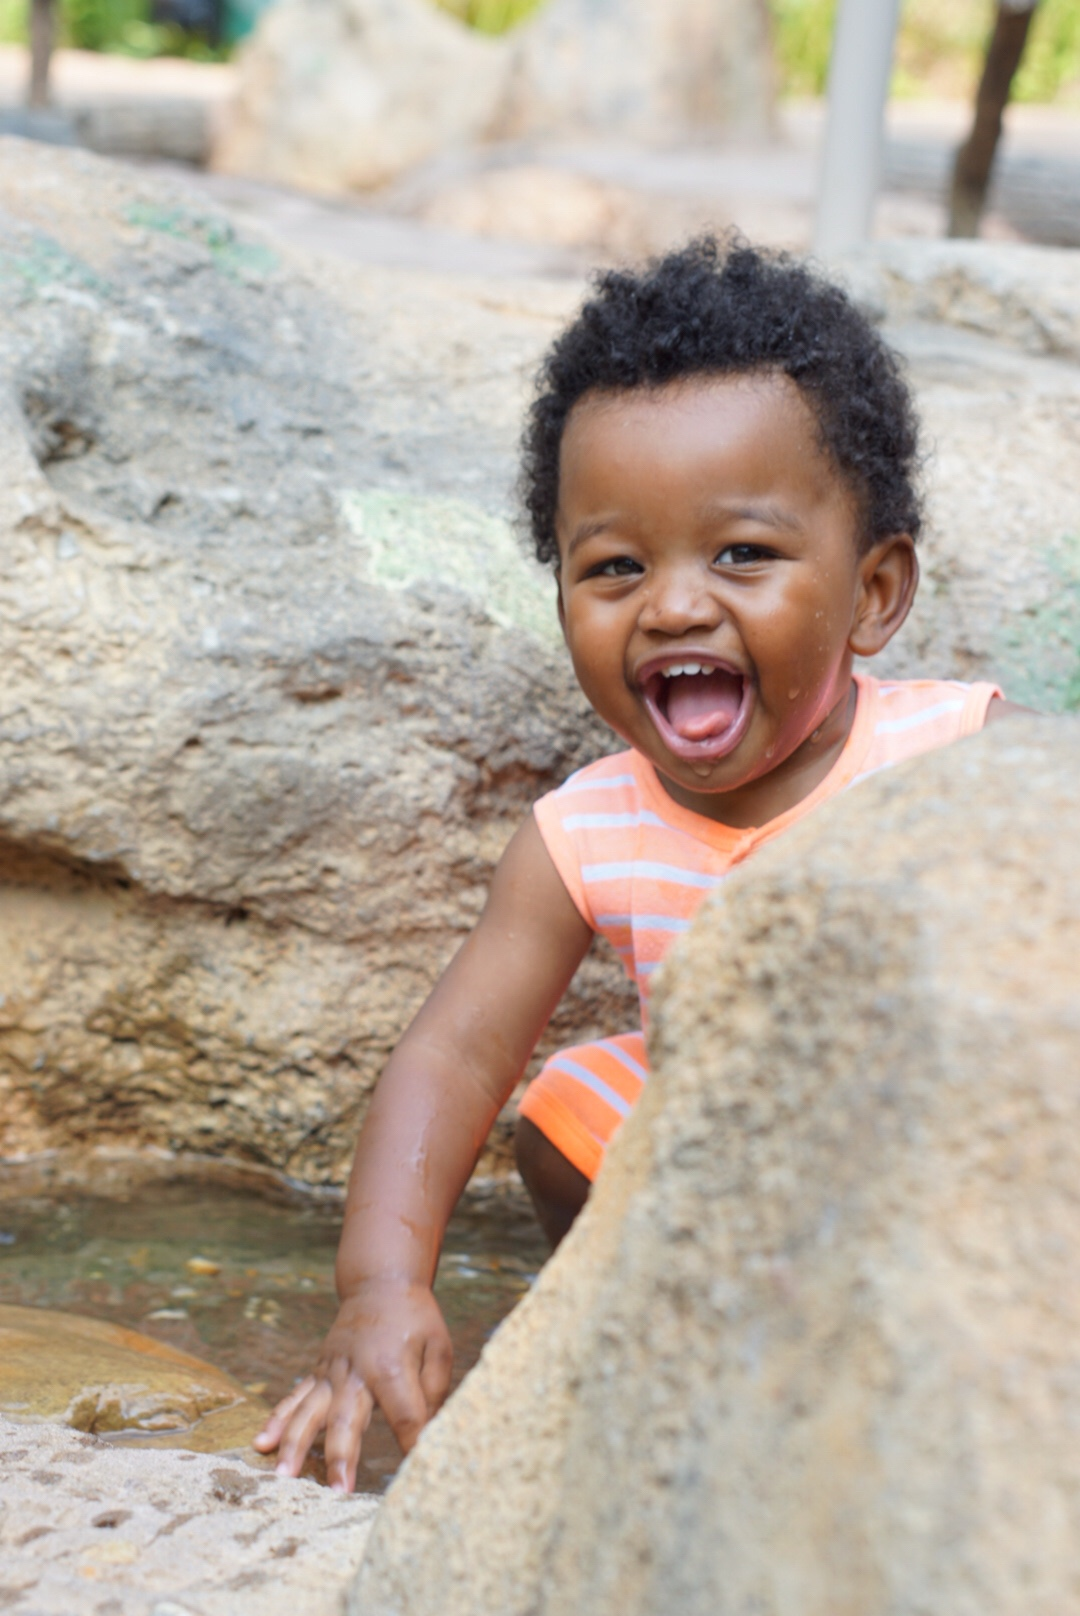 Toddler Boy Avery excited playing in water stream at Fernbank Museum in Atlanta, GA. Shot by Atlanta Lifestyle Photographer Crystal King of Just The Kings. We also shoot engagement photos, wedding photos, pregnancy photos, birthing photos, and family portraits in Austell, Powder Springs, Vinings, Marietta, Cobb County, and surrounding Metro Atlanta. Visit us at www.justthekings.com